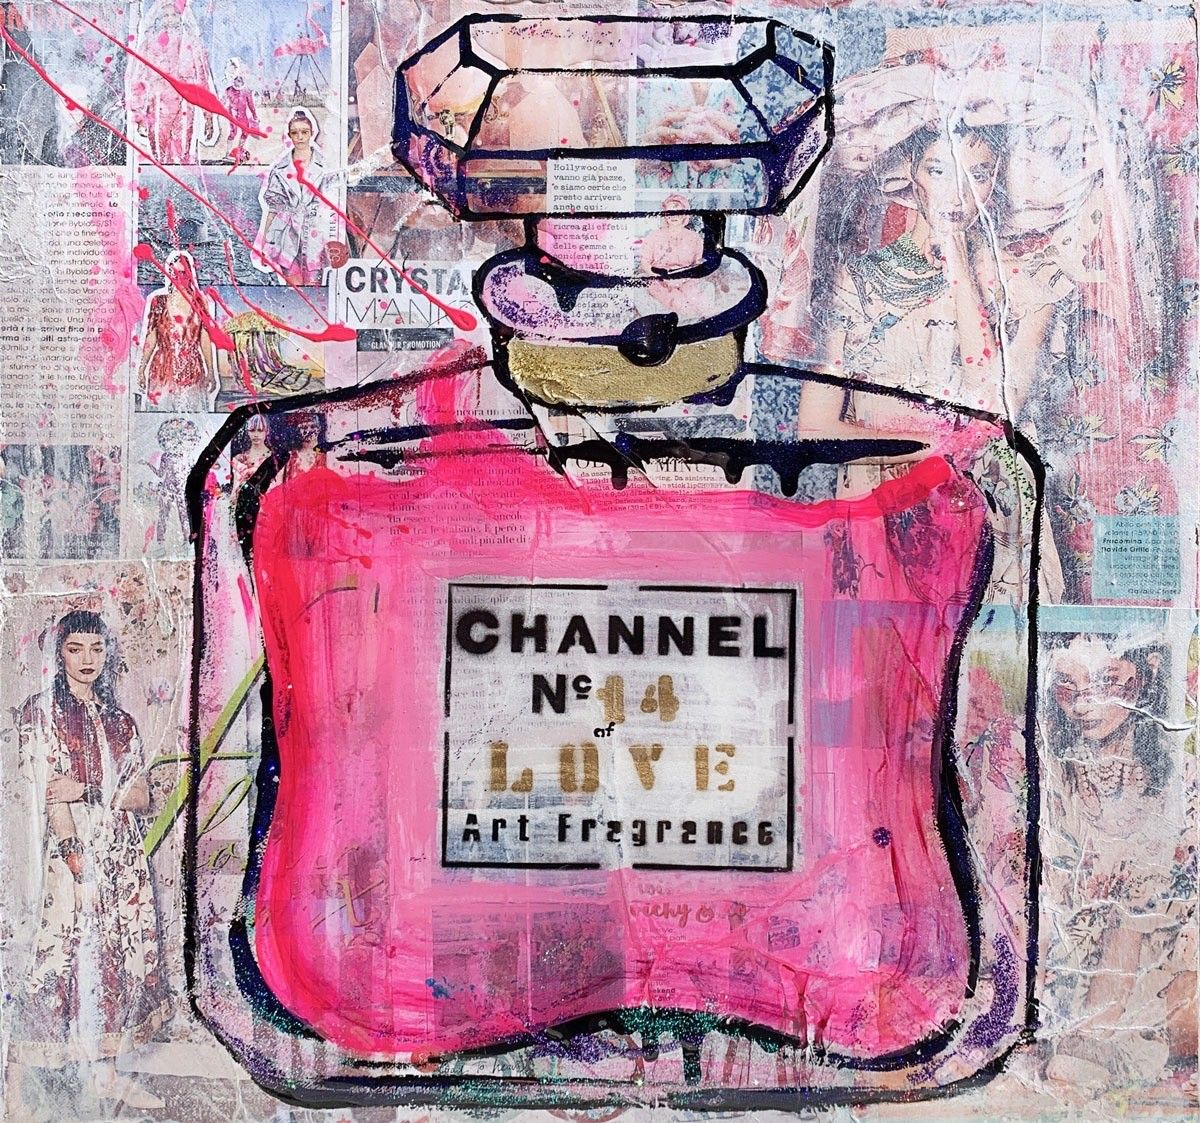 "MIXED MEDIA SU TELA LUDMILLA RADCHENKO "" CHANNEL PINK OF LOVE # 14 ""  dimensioni L 50 x H 50 cm."